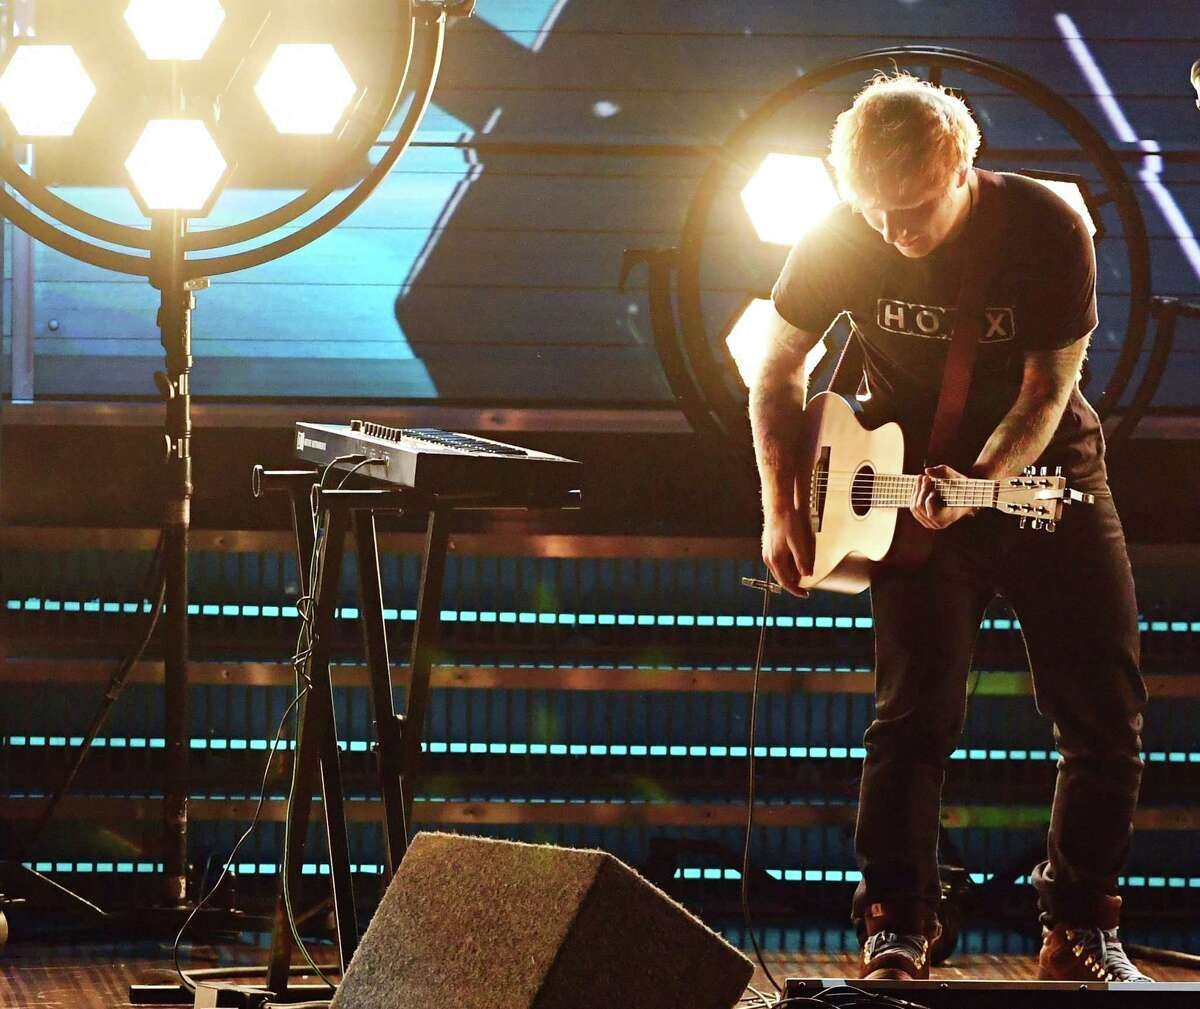 He performs alone Though he's touring arenas, Ed Sheeran continues to perform without a band.